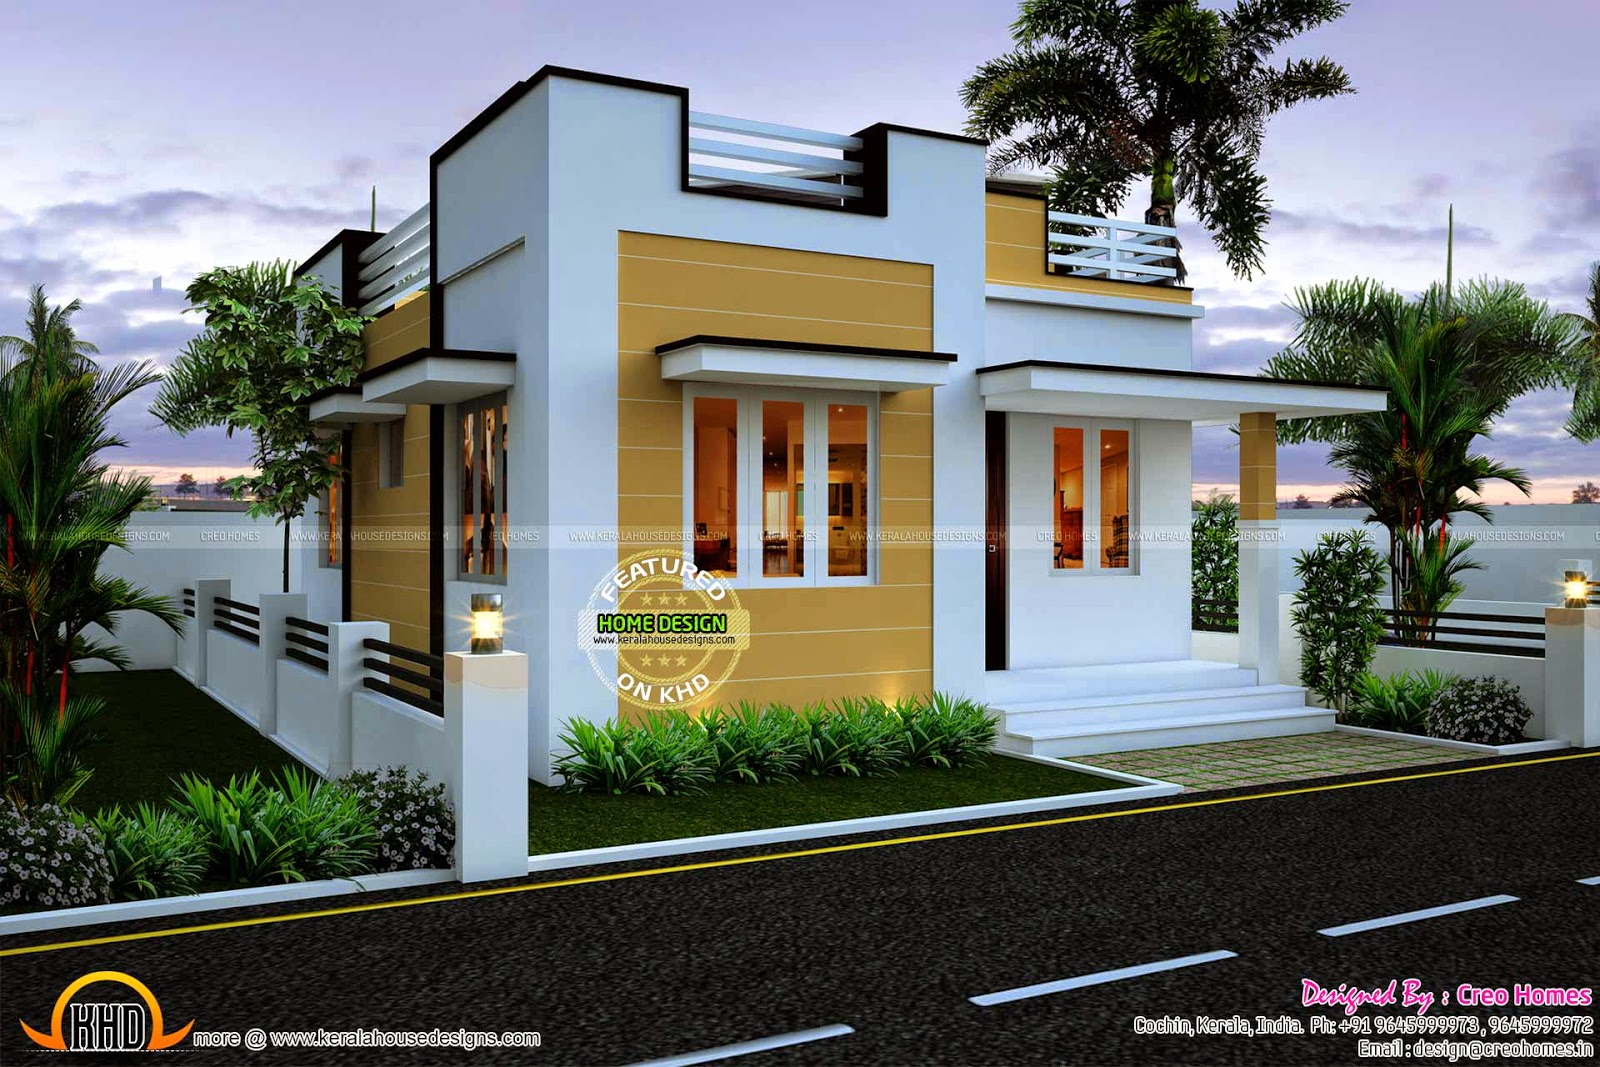 545 Sq Ft Beautiful Kerala Home Plan With Budget Of 5 To 7 Lakh Including  Floor Flan